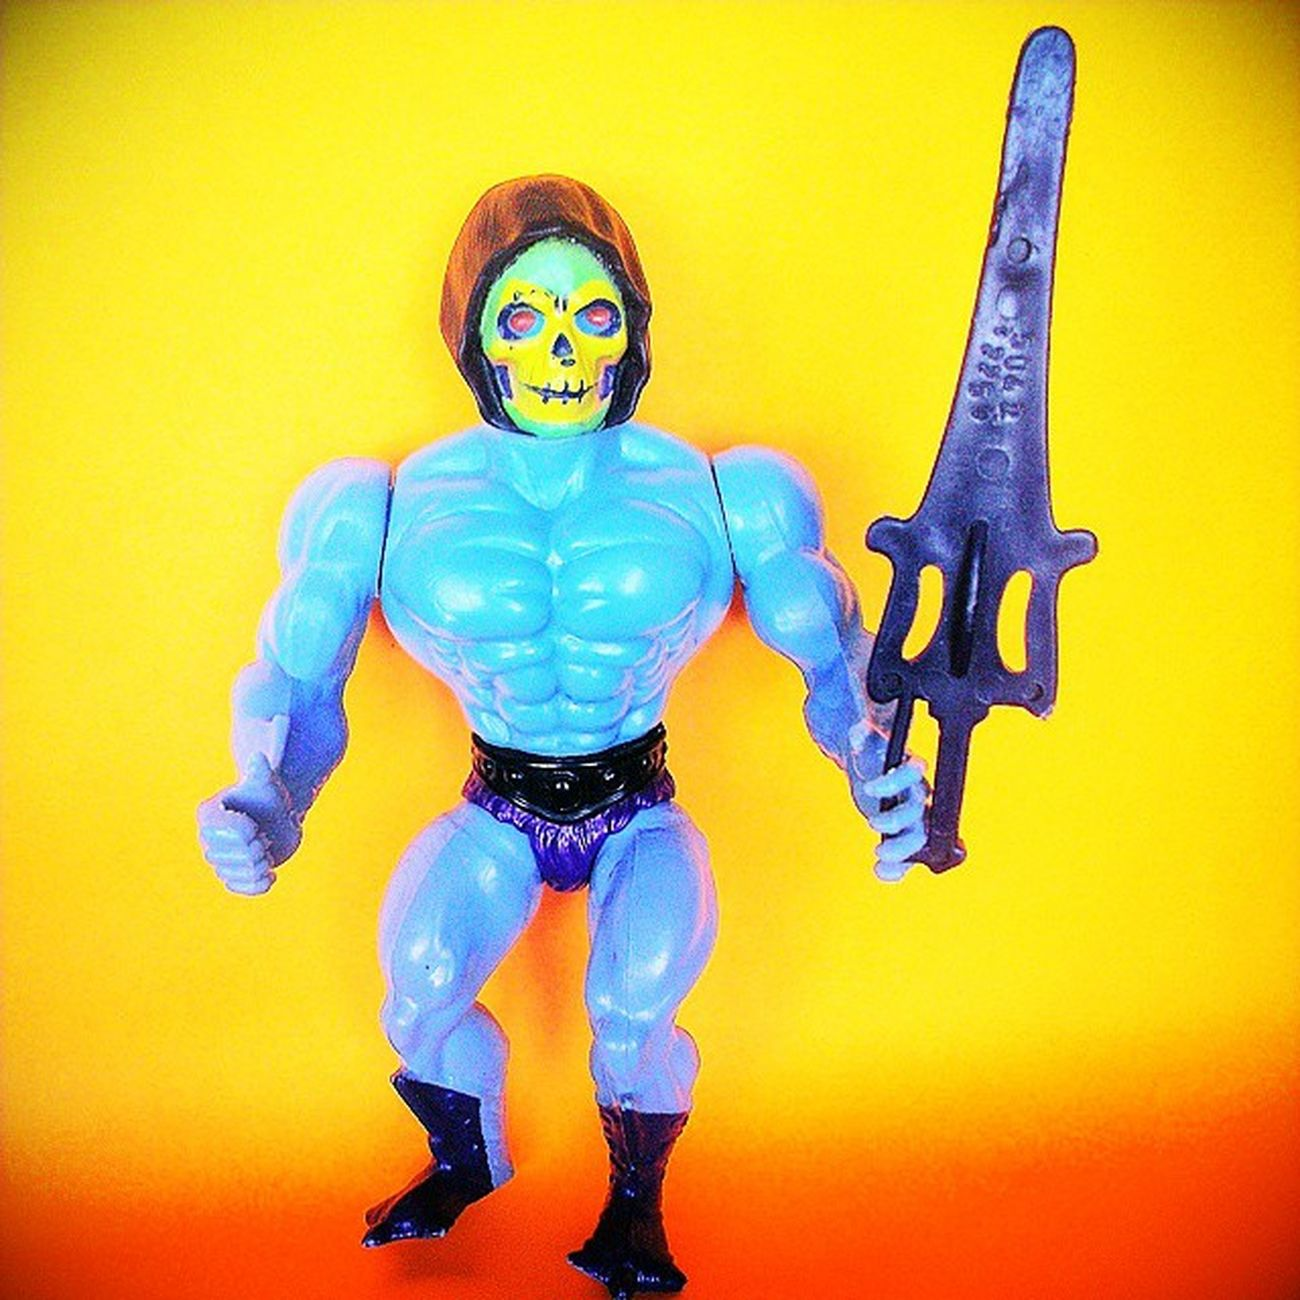 This is a 1981 V1 half-boot Skeletor from the first edition 8-back card, Madeintaiwan . What makes him special aside from the half-boots: he has a purple loin cloth (instead of black), orange in the cheeks and bright blue paint in the eye sockets. The first Skeletors had the most detail of all the releases. Notice anything odd about the sword? It was made using the Heman mold. Instead of the typical notch, there's a tab sticking out and the hilt is on the wrong side. Not sure how/why that happened, just that it's an unusual piece. Motu Mastersoftheuniverse Eternia Mattycollector Mattel 1980s Actionfigures Vintagetoys 80scartoons 80s 80sTV 80spopculture 80schild 80sKid 80stoys Vintageactionfigures Vintage Toypics Toycrewbuddies Toycollection Toycollector toycommunity actionfigures actionfigurephotography